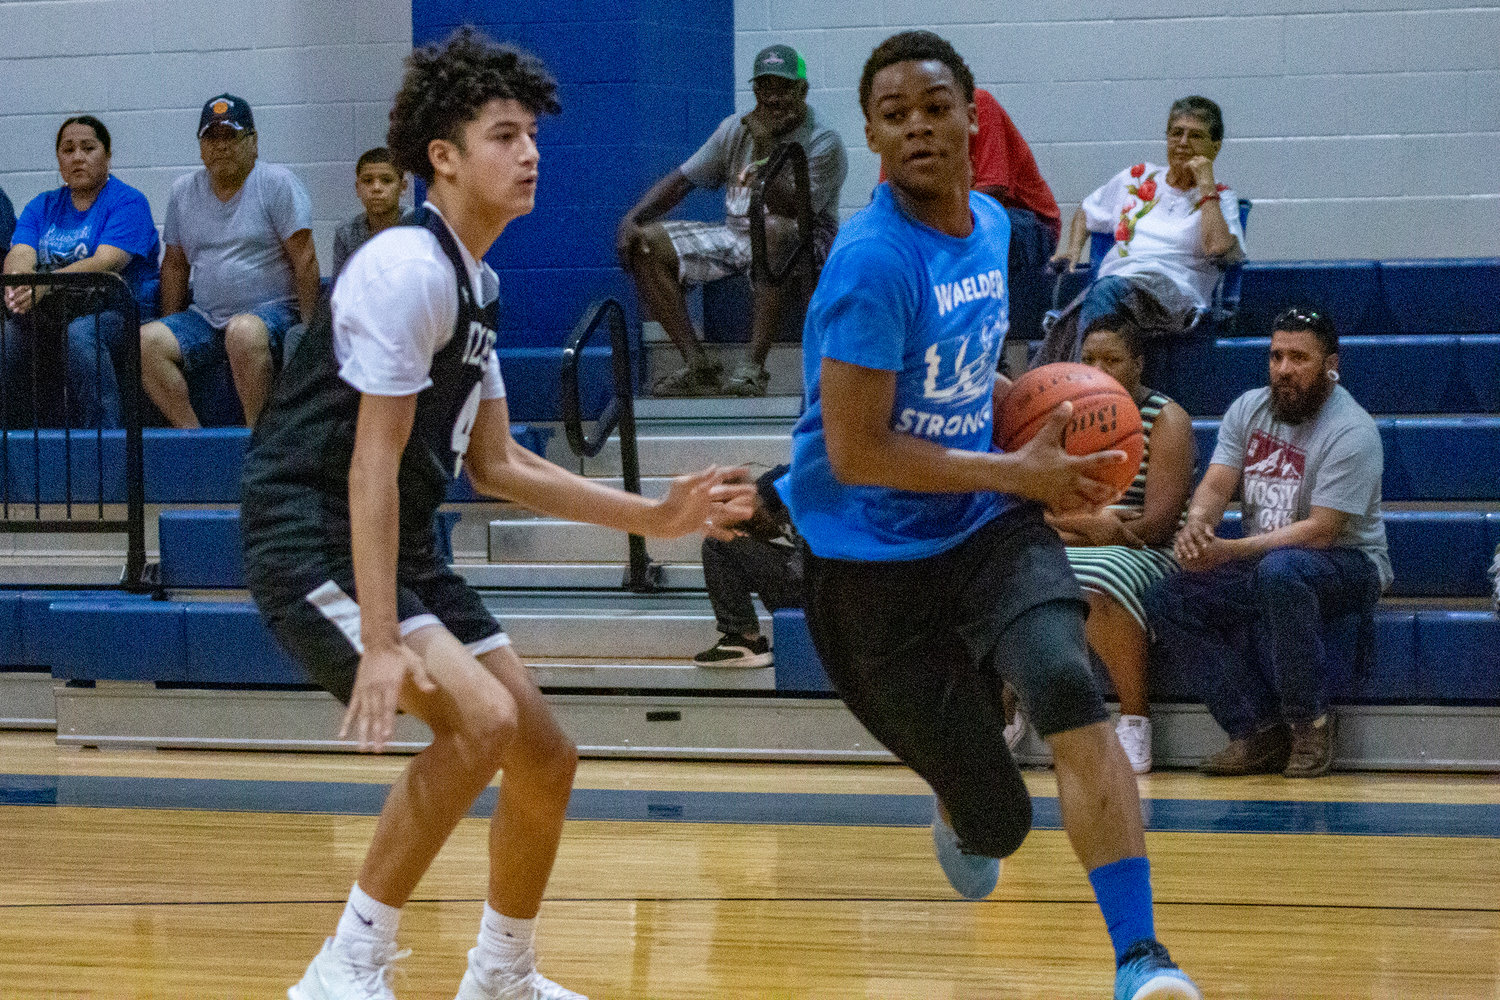 The Waelder Wildcats hosted a summer basketball league in July, playing against schools nearby like Schulenburg and (pictured) the Gonzales Apaches. The games gave the basketball programs the opportunity to put their athletes in competitive situations.